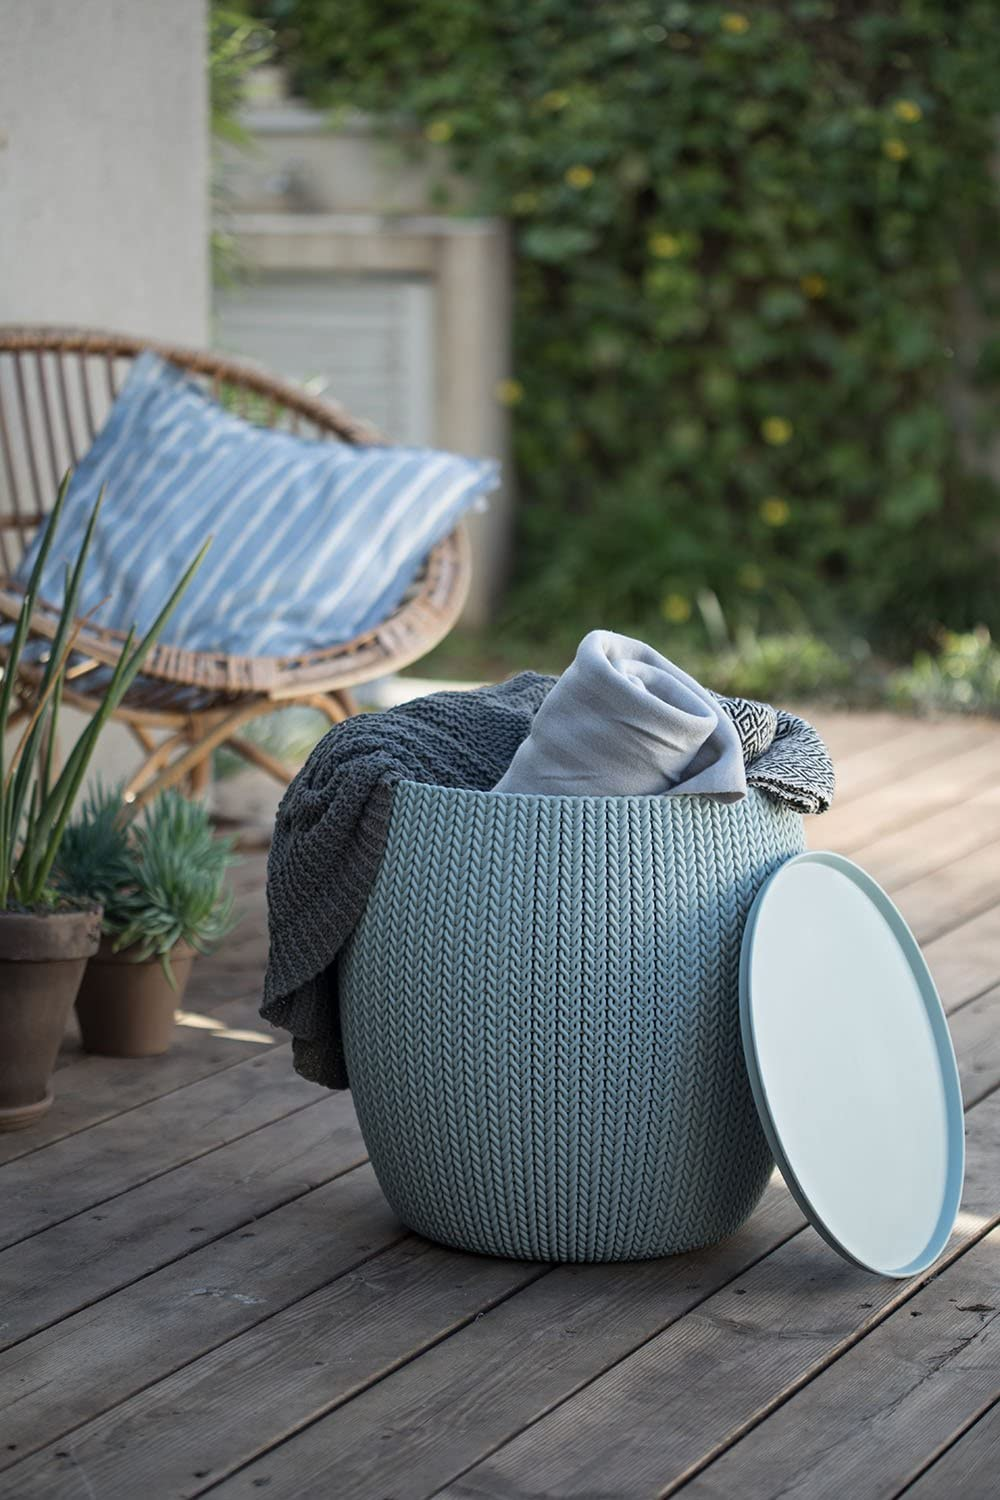 Keter-Urban-Knit-2 15 Unique Furniture Designs for Outdoor Small Spaces